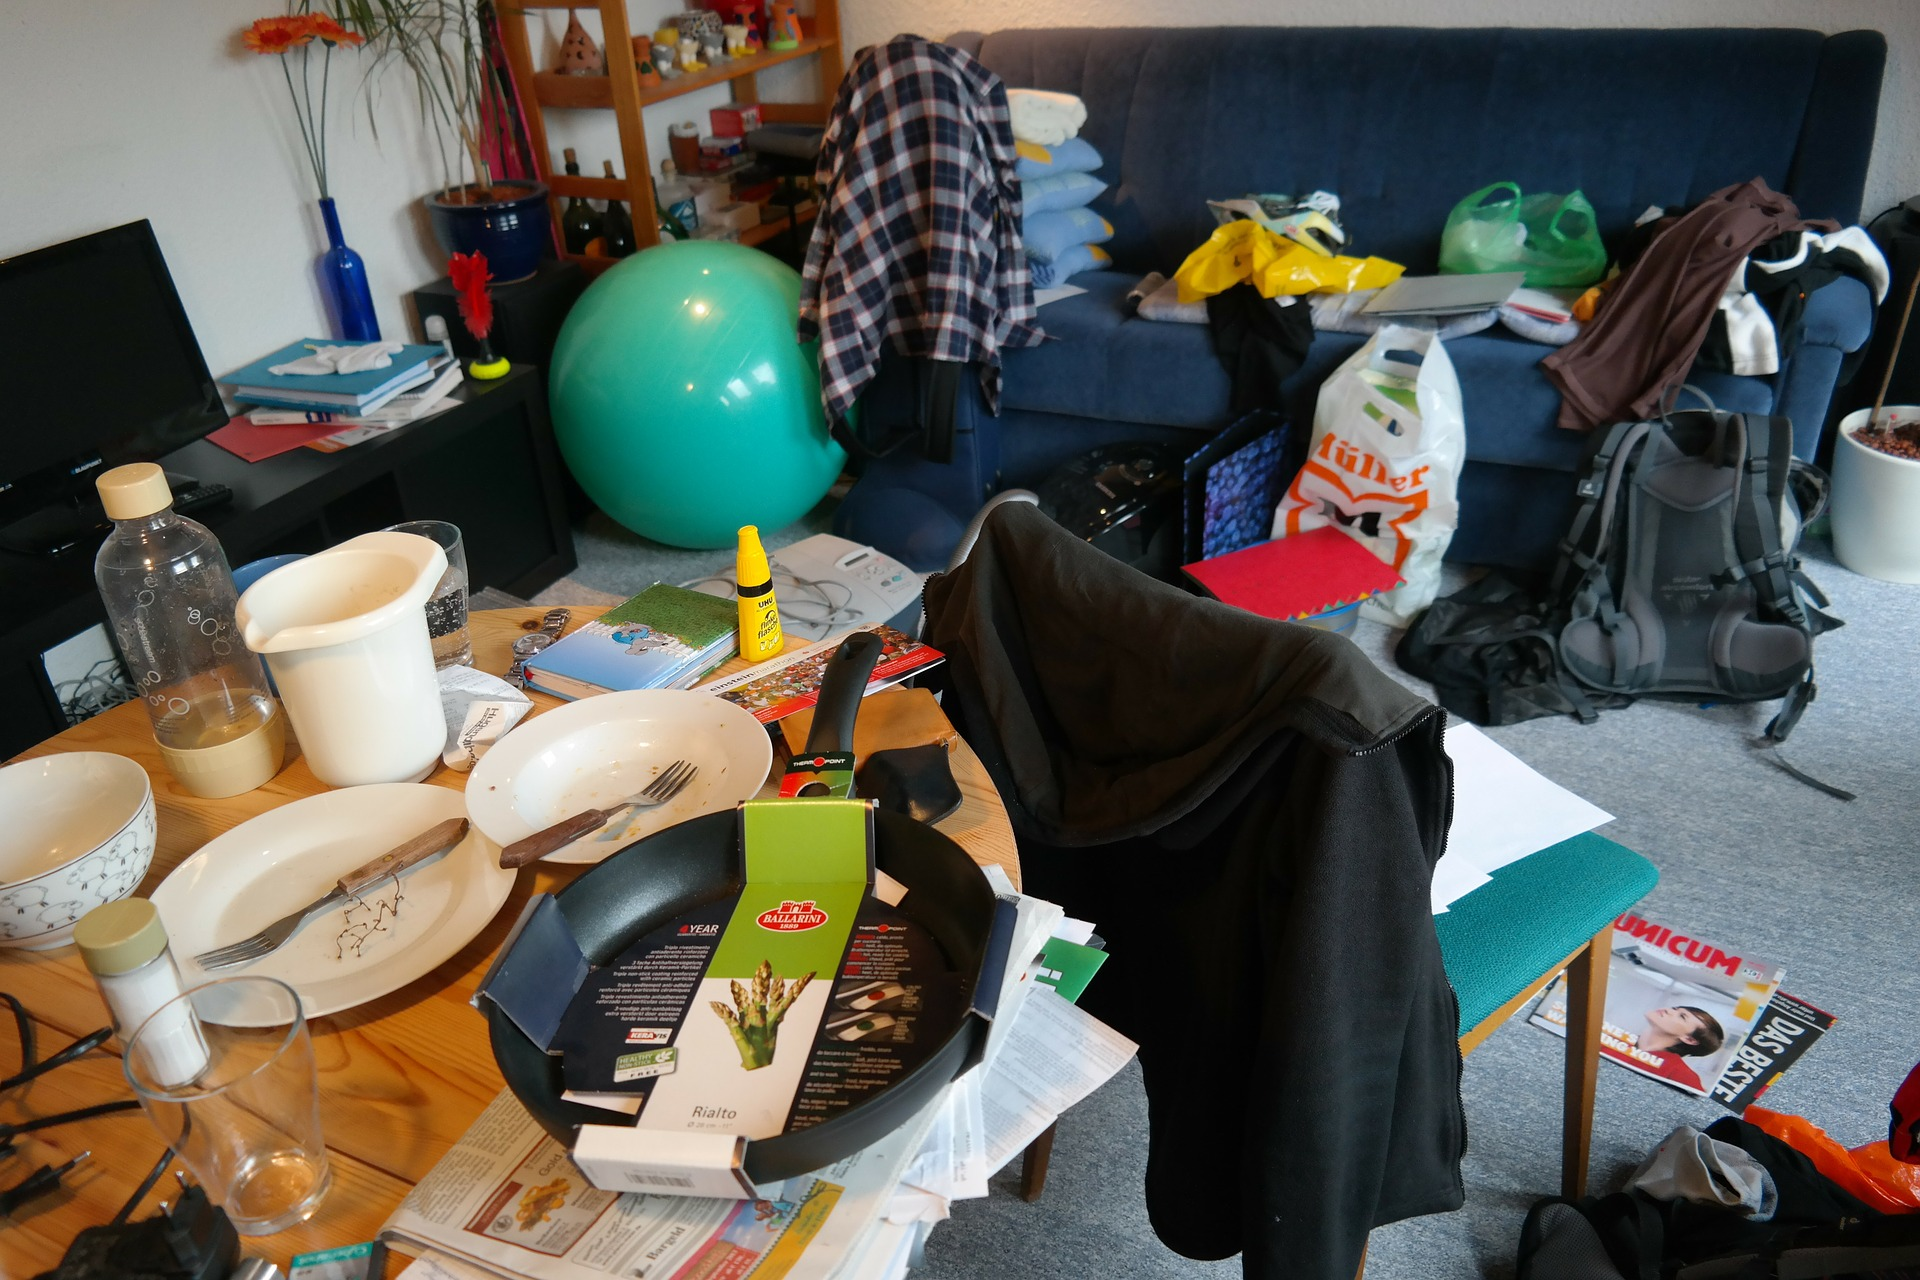 4 Reasons to Declutter Once Summer Ends